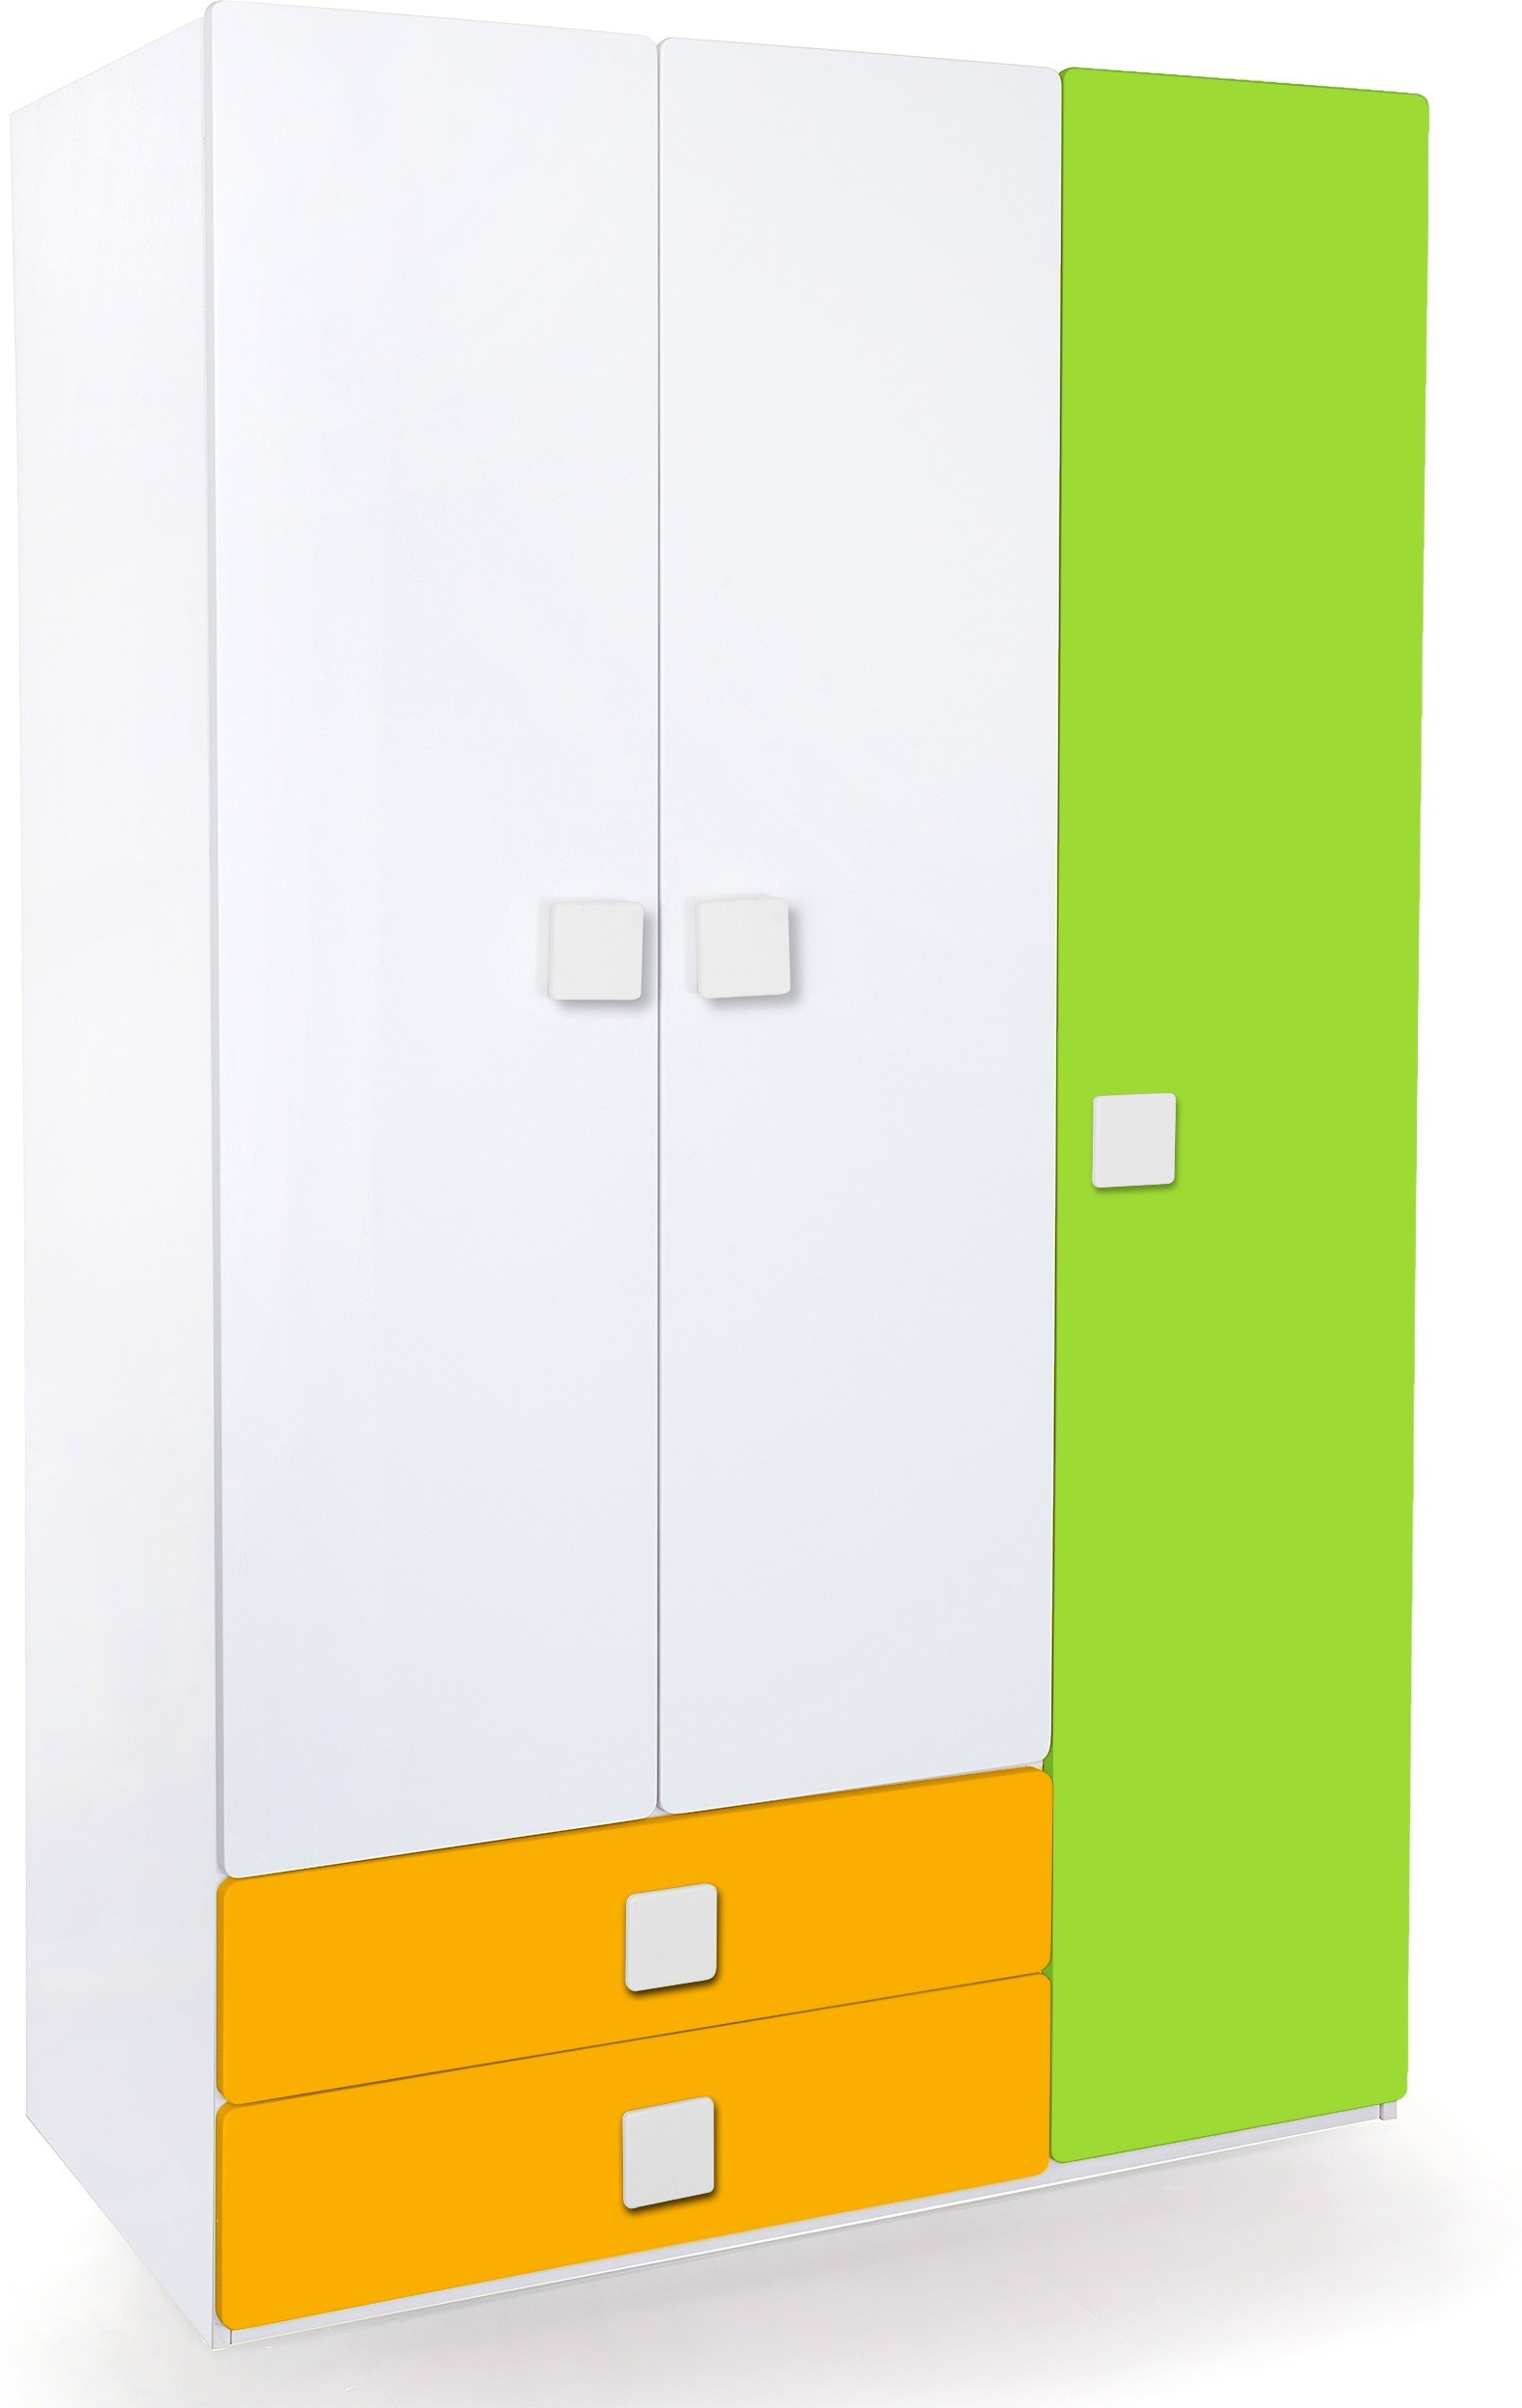 View Alex Daisy Universal Engineered Wood 3 Door Wardrobe(Finish Color - White, Yellow & Green) Price Online(Alex Daisy)